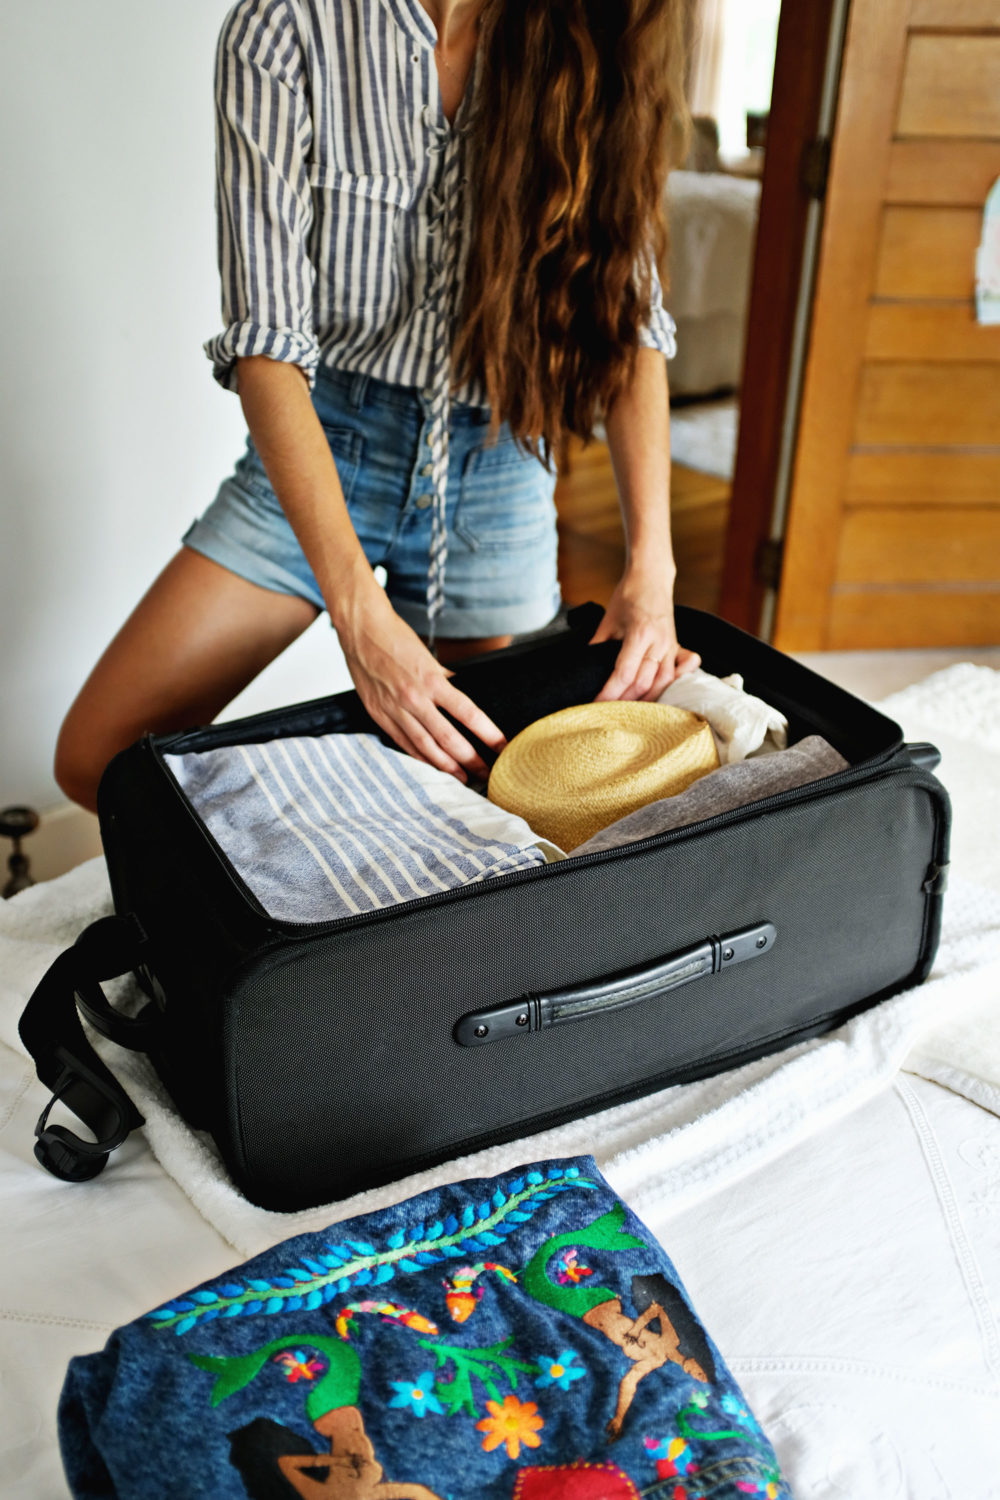 ohdeardrea-travel-how-to-pack-a-hat-blog-1.jpg